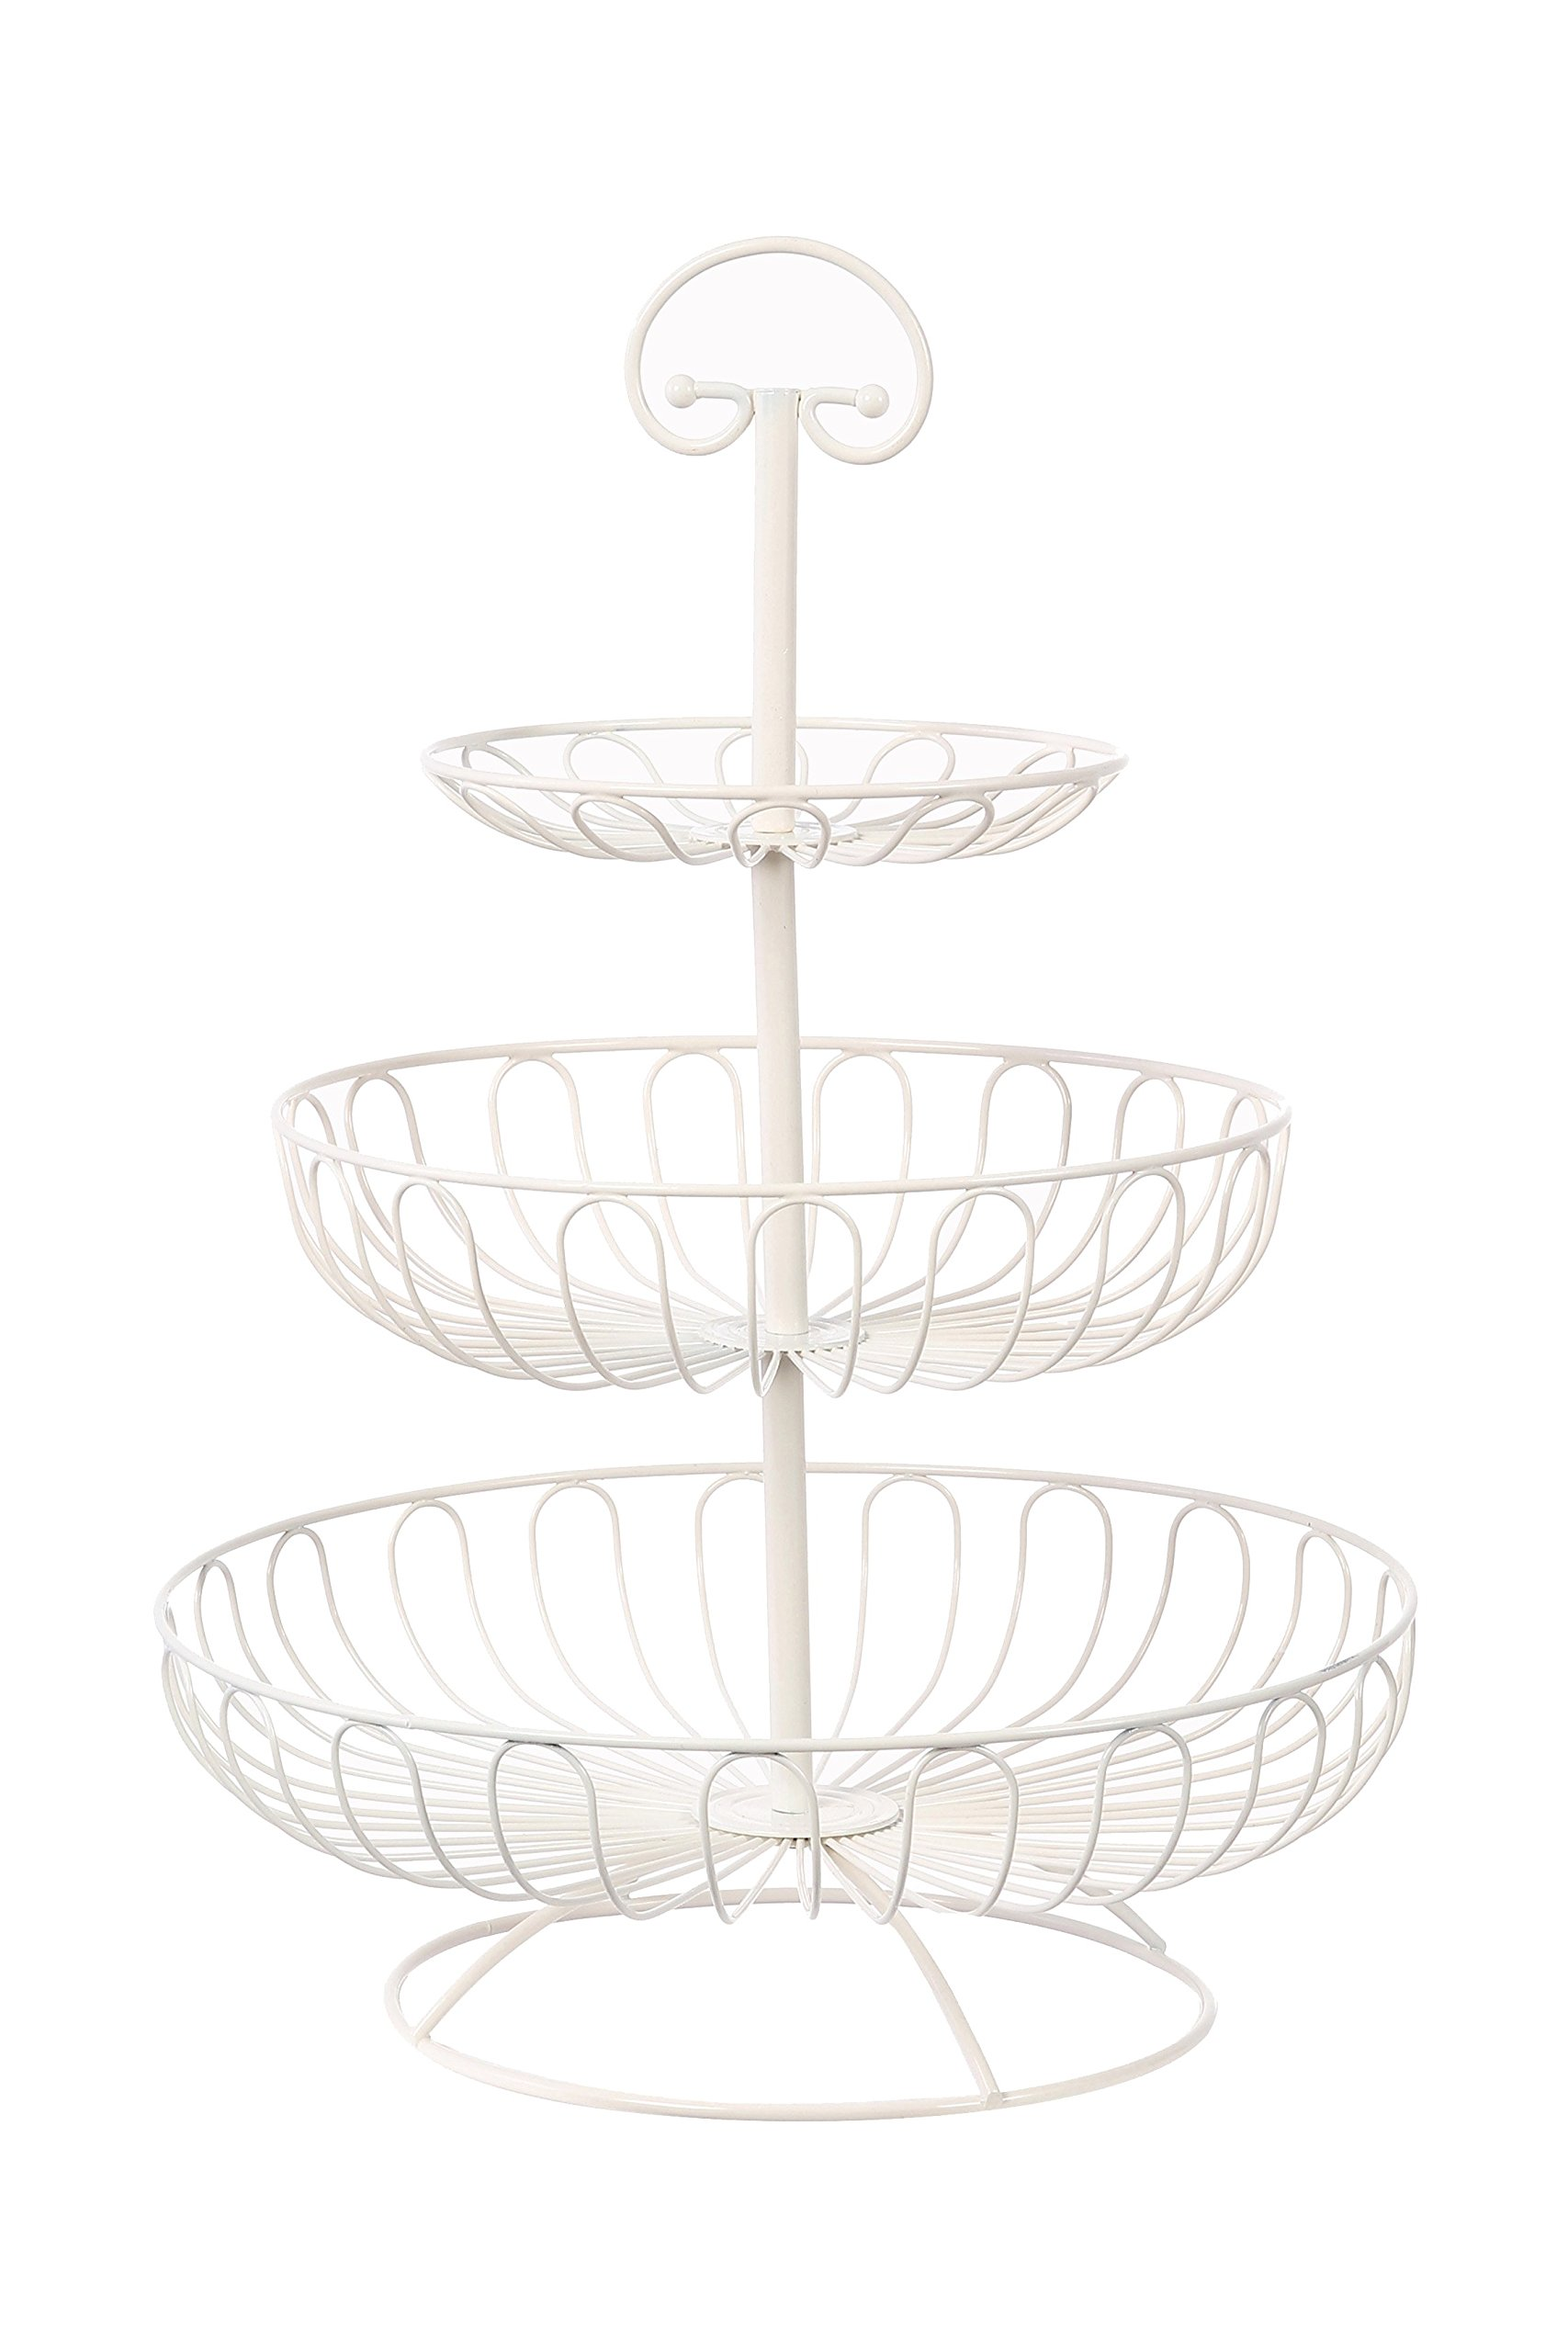 Juvale 3-Tier Decorative Display Fruit Basket, Cream, 13'' x 13'' by Juvale (Image #1)